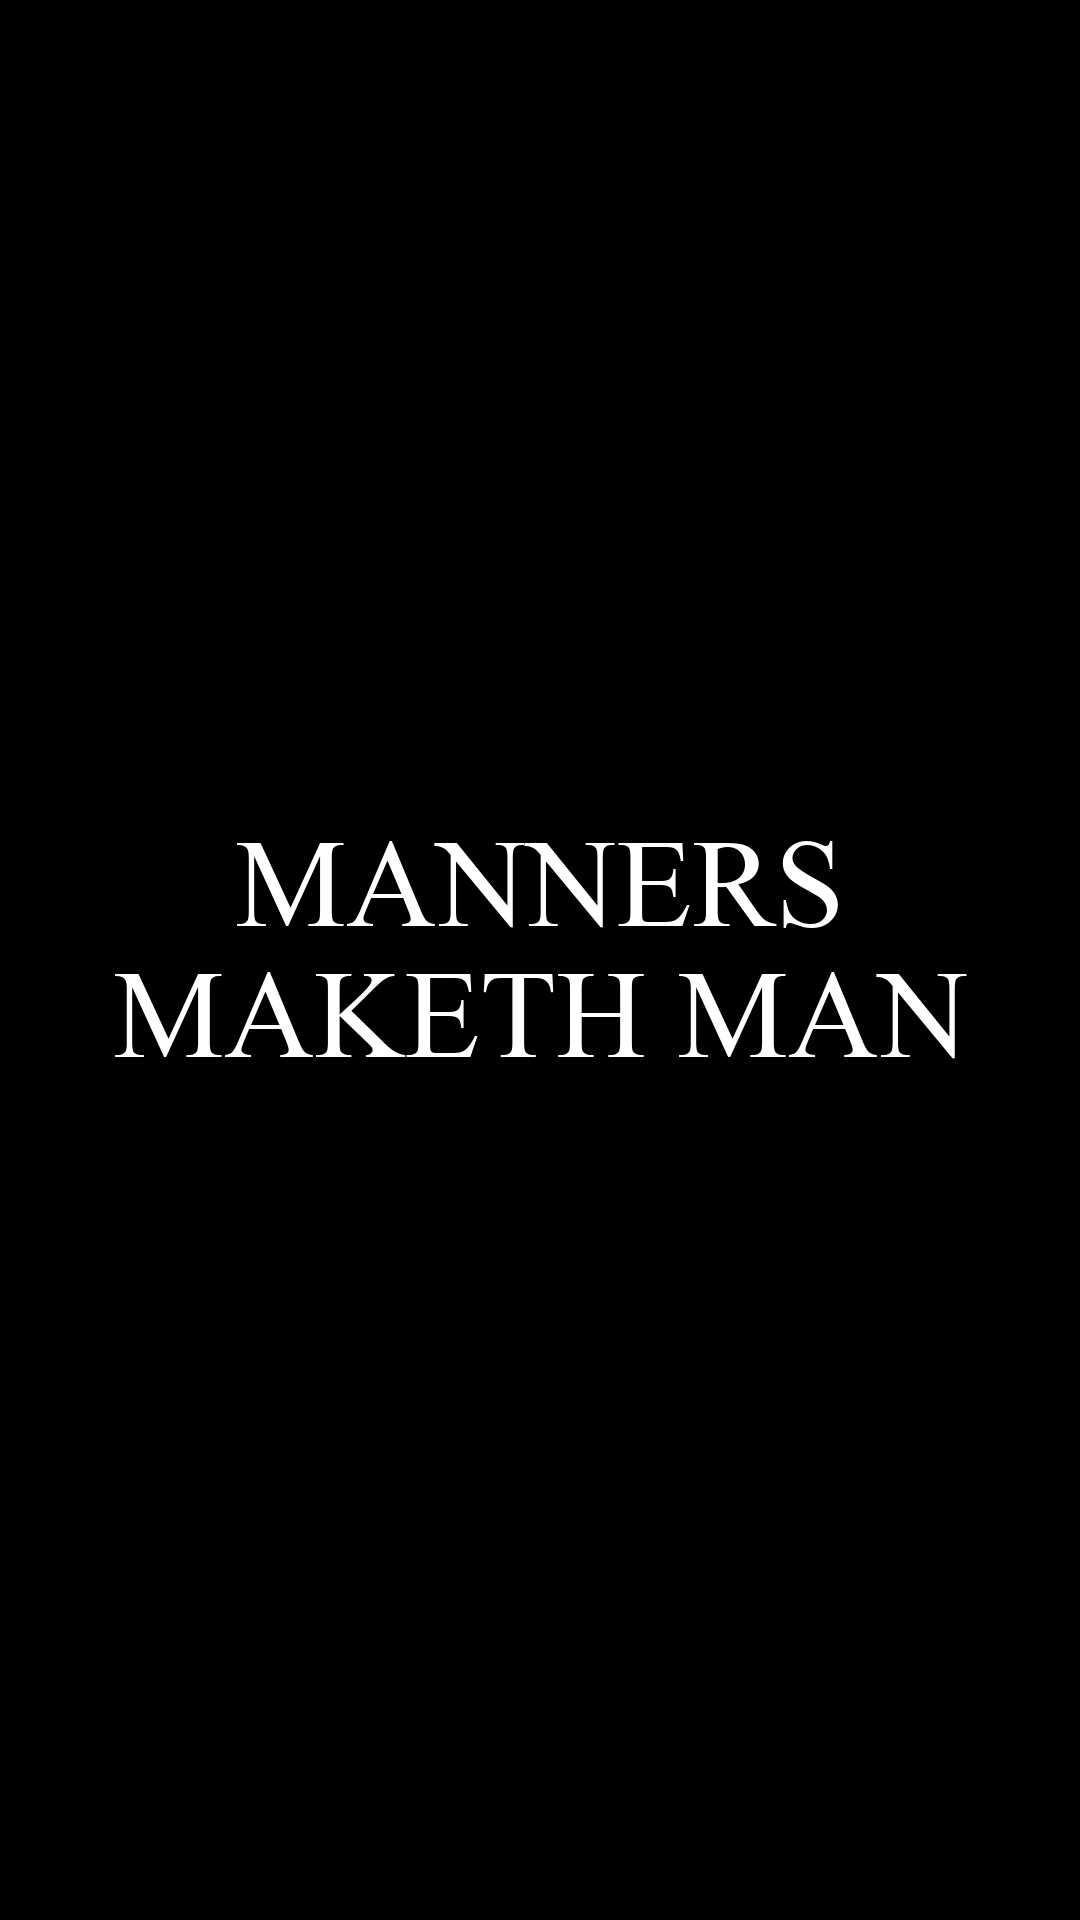 manners maketh a man The second trailer for the matthew vaughn and mark millar movie 'kingsman: the secret service' heavily features colin firth as harry hart.